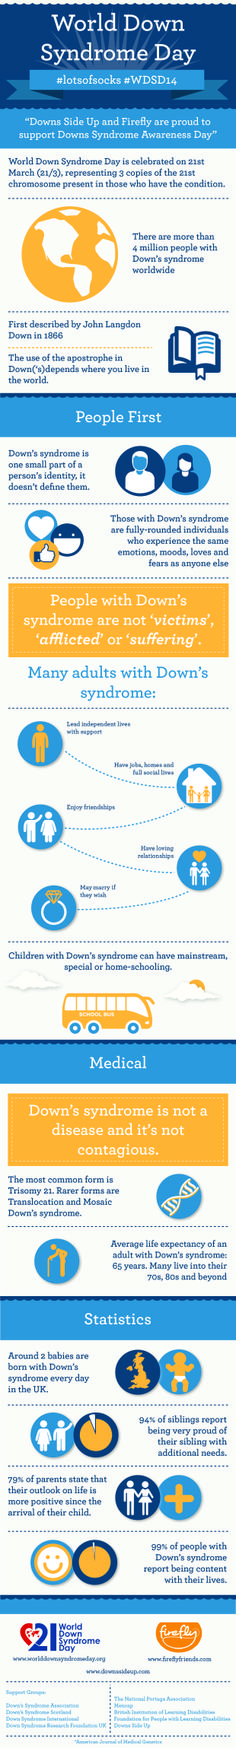 Down Syndrome infographic for World Down Syndrome Day #WDSD2014 by Leckey and Downs Side Up